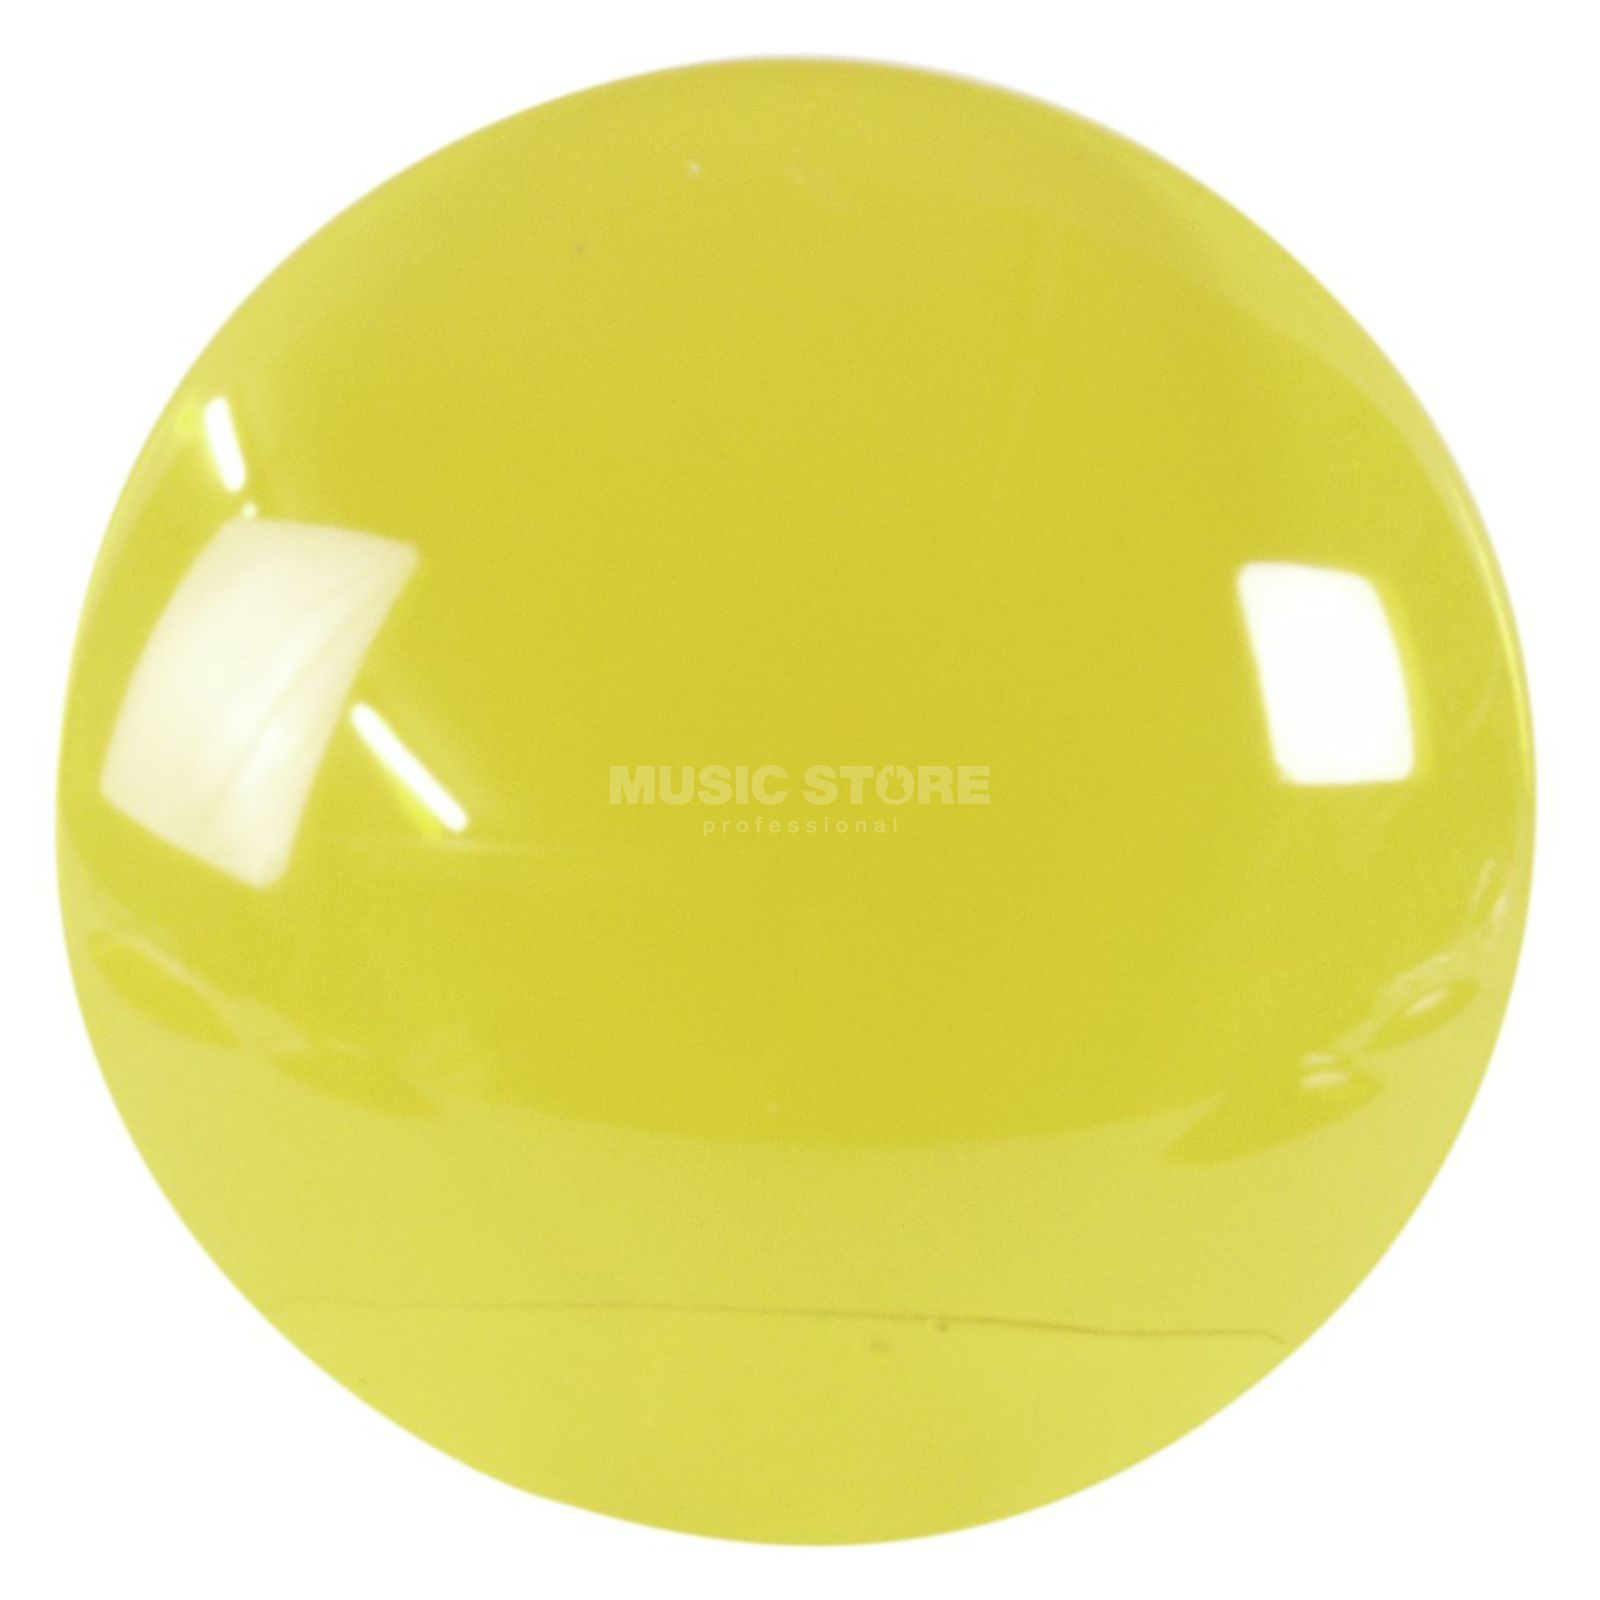 Eurolite Par 36 Color Cap Yellow for Par 36 Produktbillede